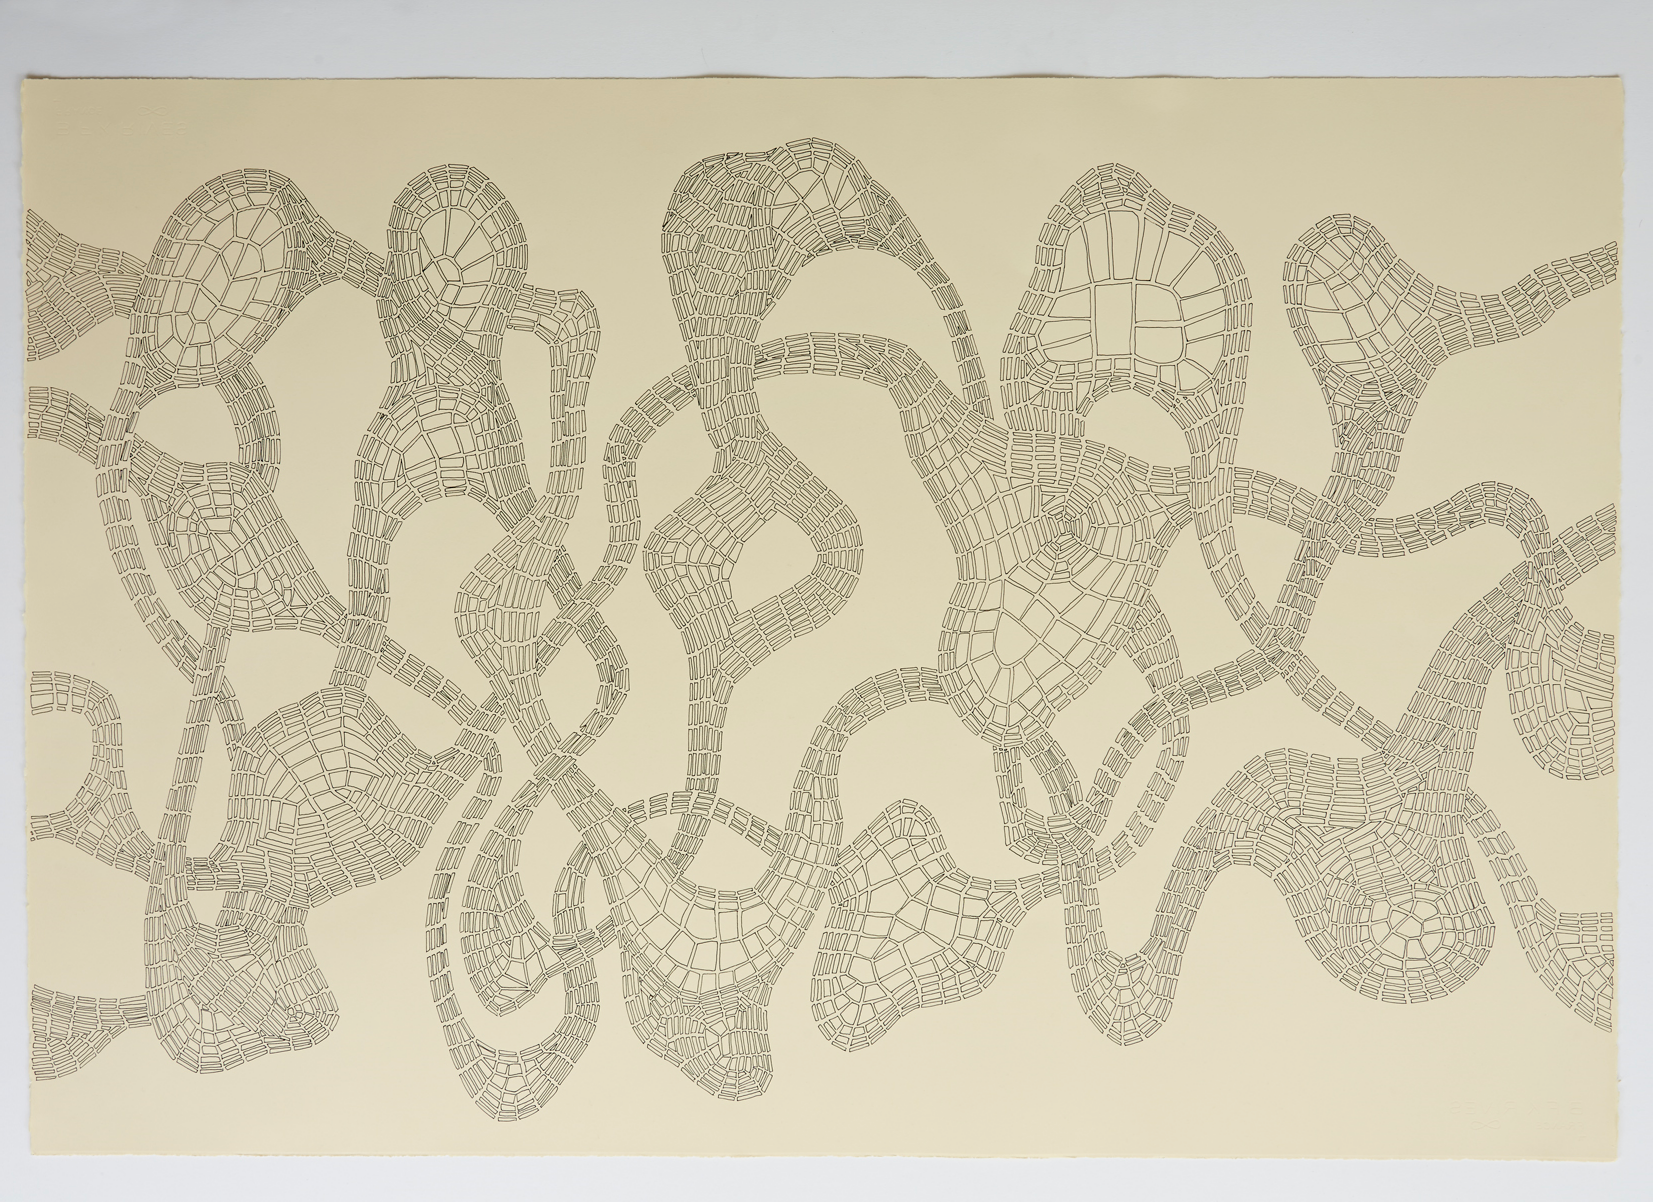 Untitled (The Dance) No. 2, 2013